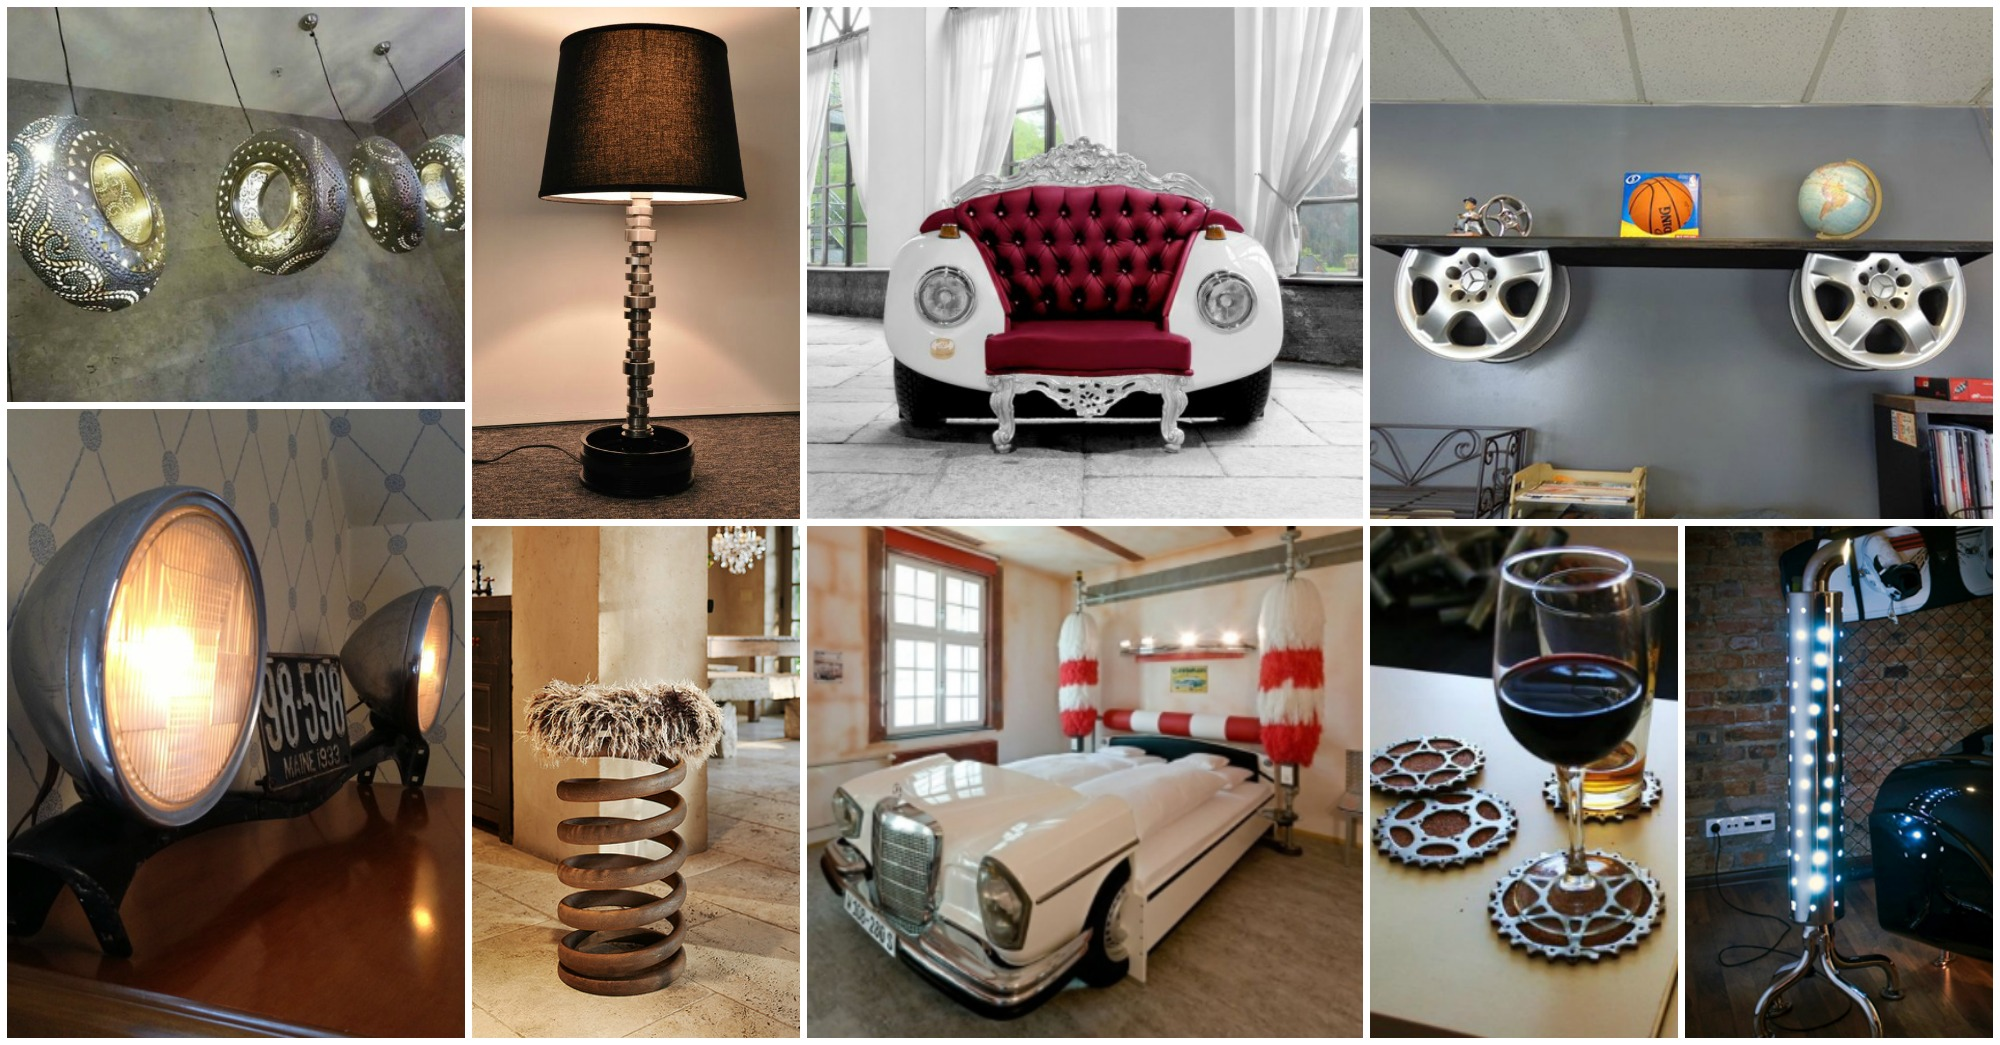 15 fascinating recycled car parts ideas for Diy car interior decor